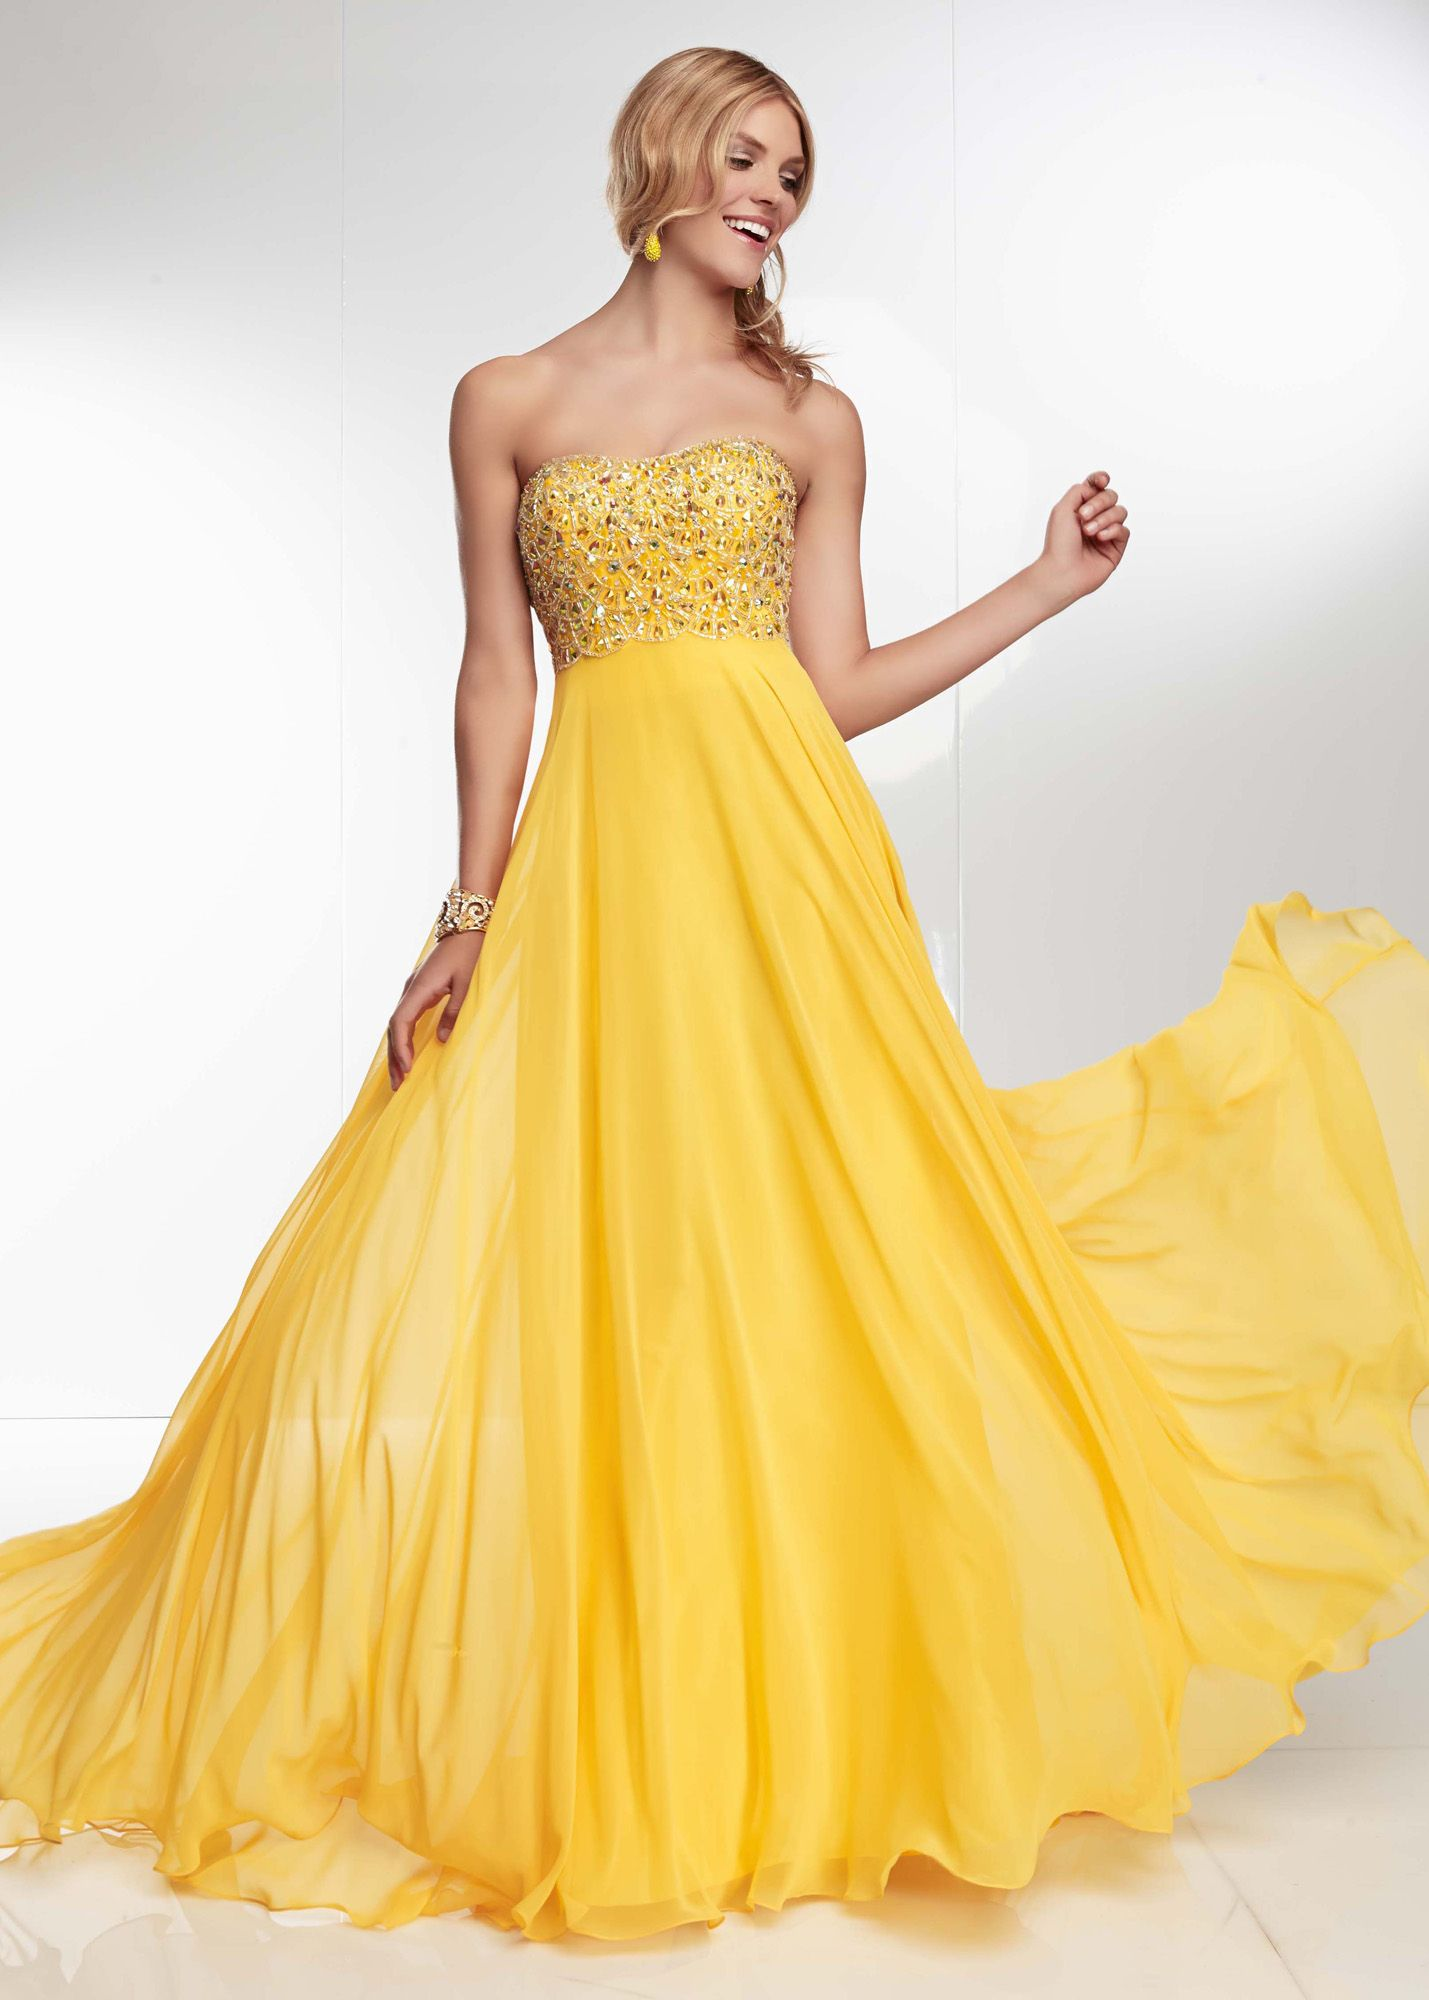 10 Best images about Yellow Fashion✔ on Pinterest  Yellow ...